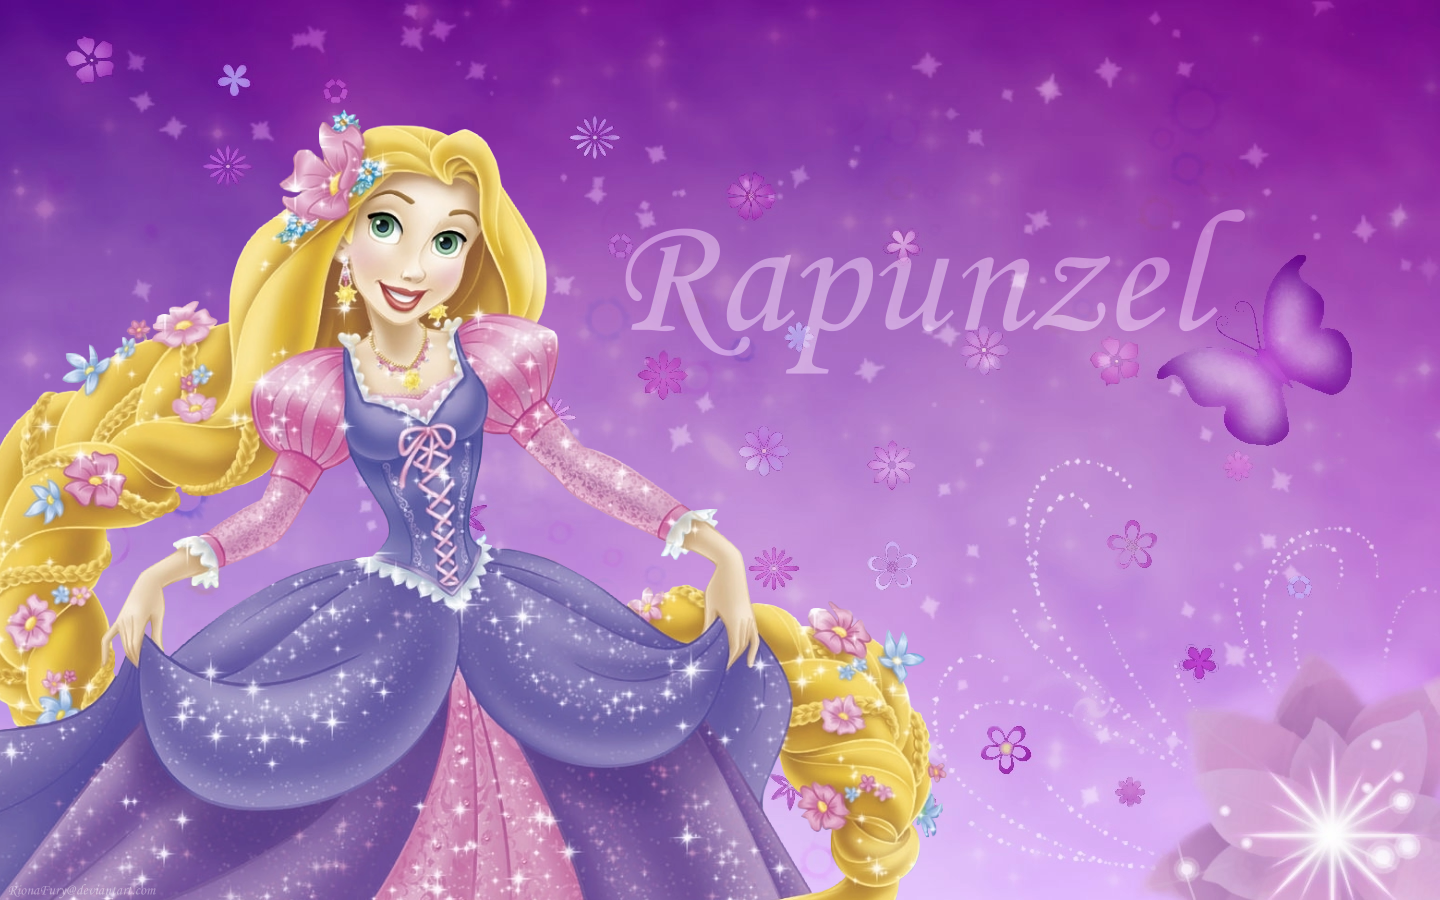 Rapunzel de Disney Wallpaper Disney Princess Rapunzel 1440x900